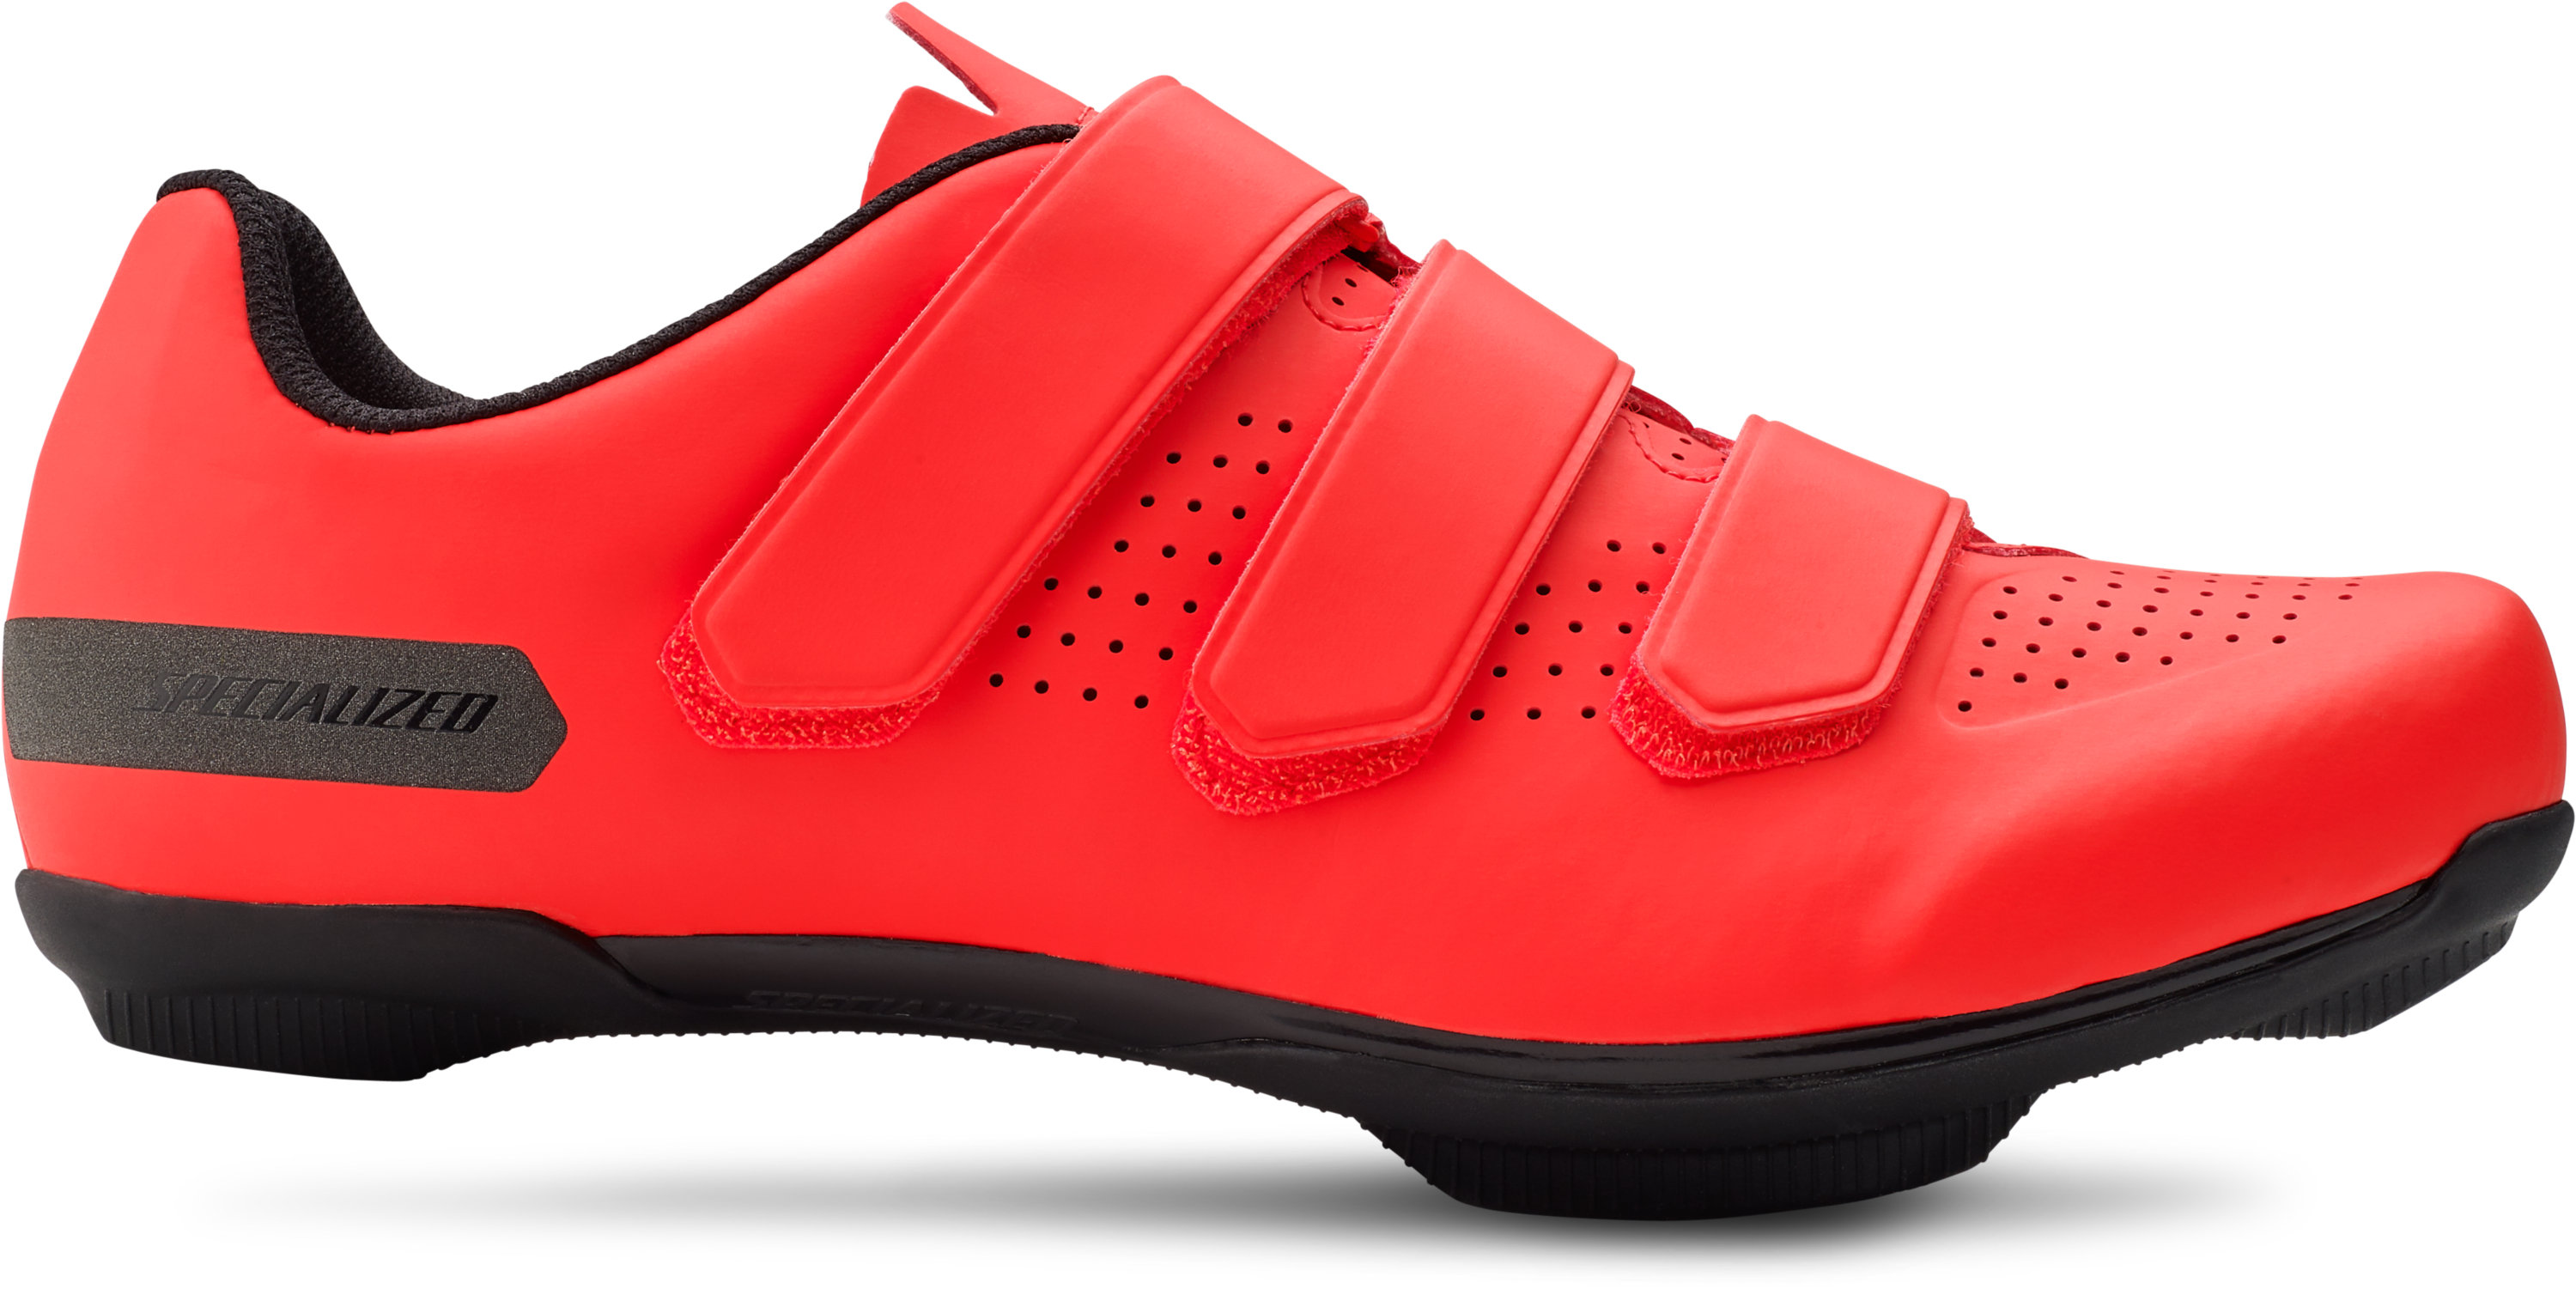 Specialized Outlet Womens Shoes